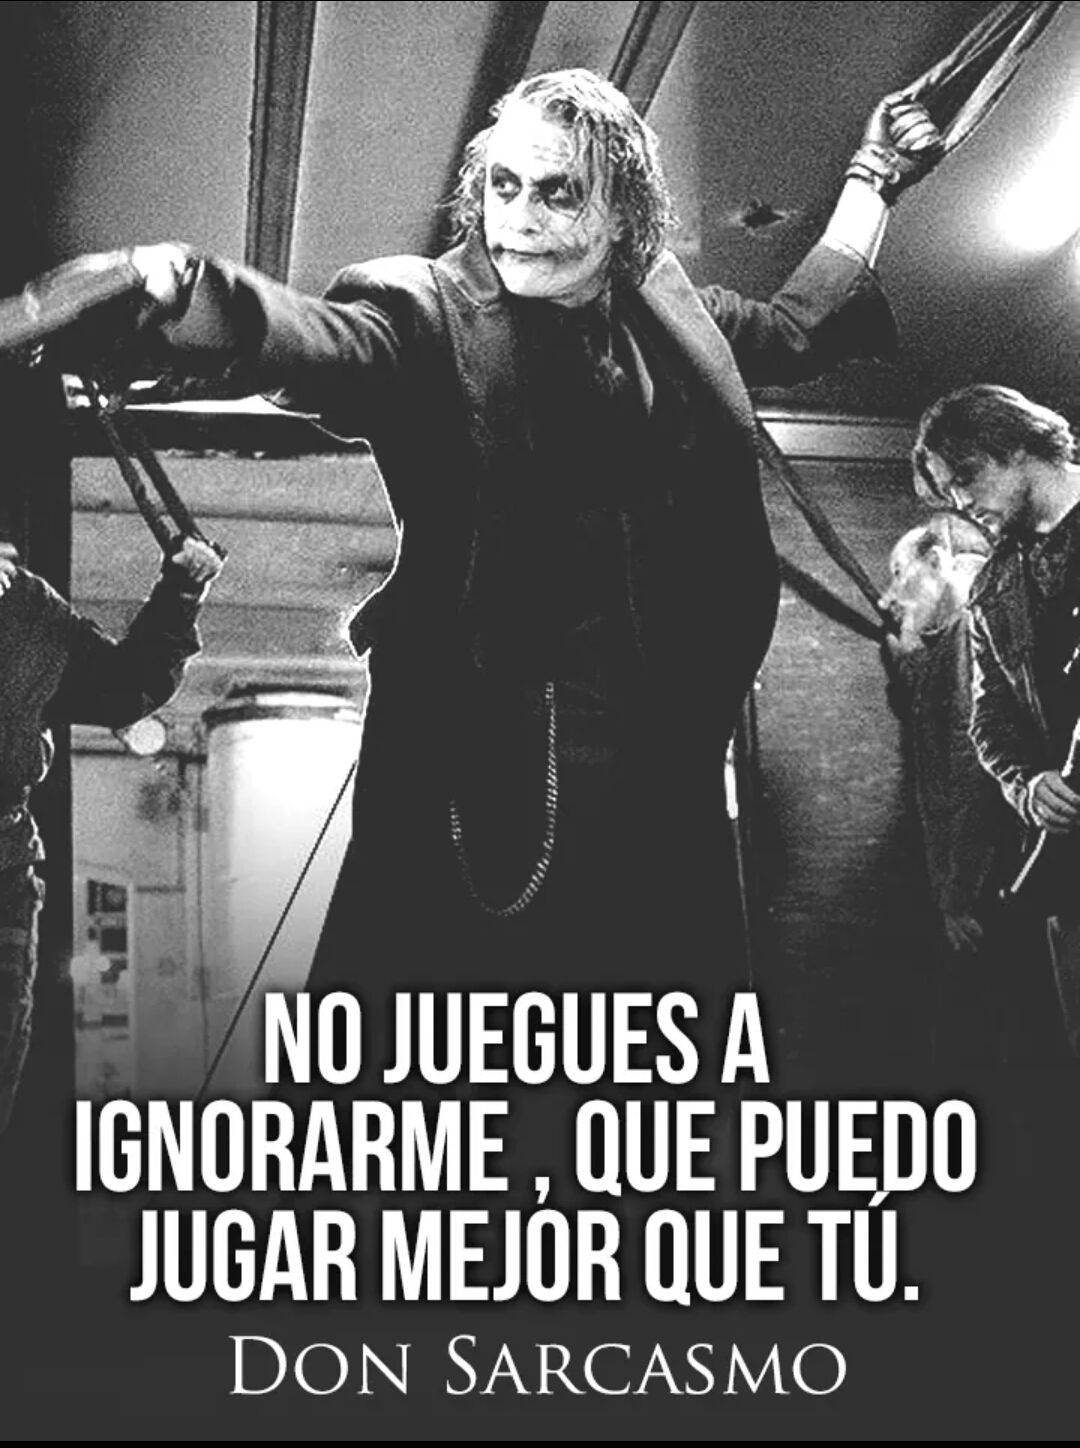 Pin By Felix On Mi Amor Pinterest Joker Frases And Pablo Neruda